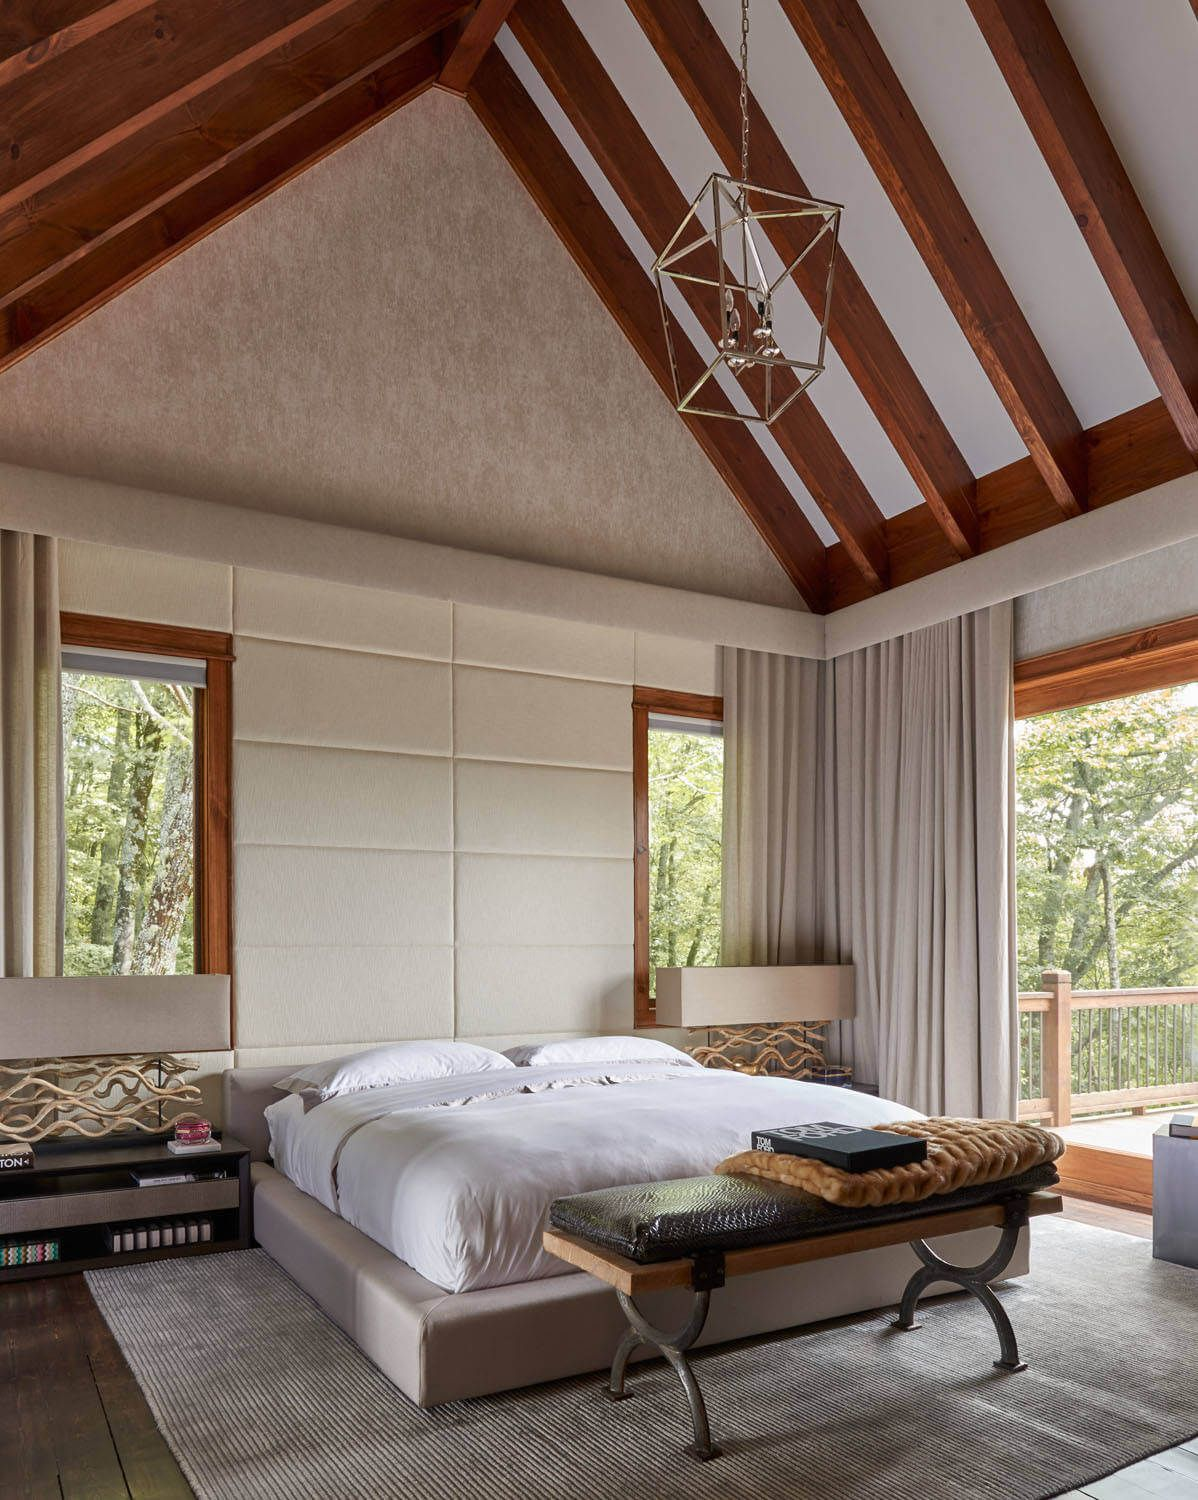 bedroom ceiling. Modern bedroom with a platform bed and vaulted ceiling Vaulted Ceilings  A Twist on Classic Architecture